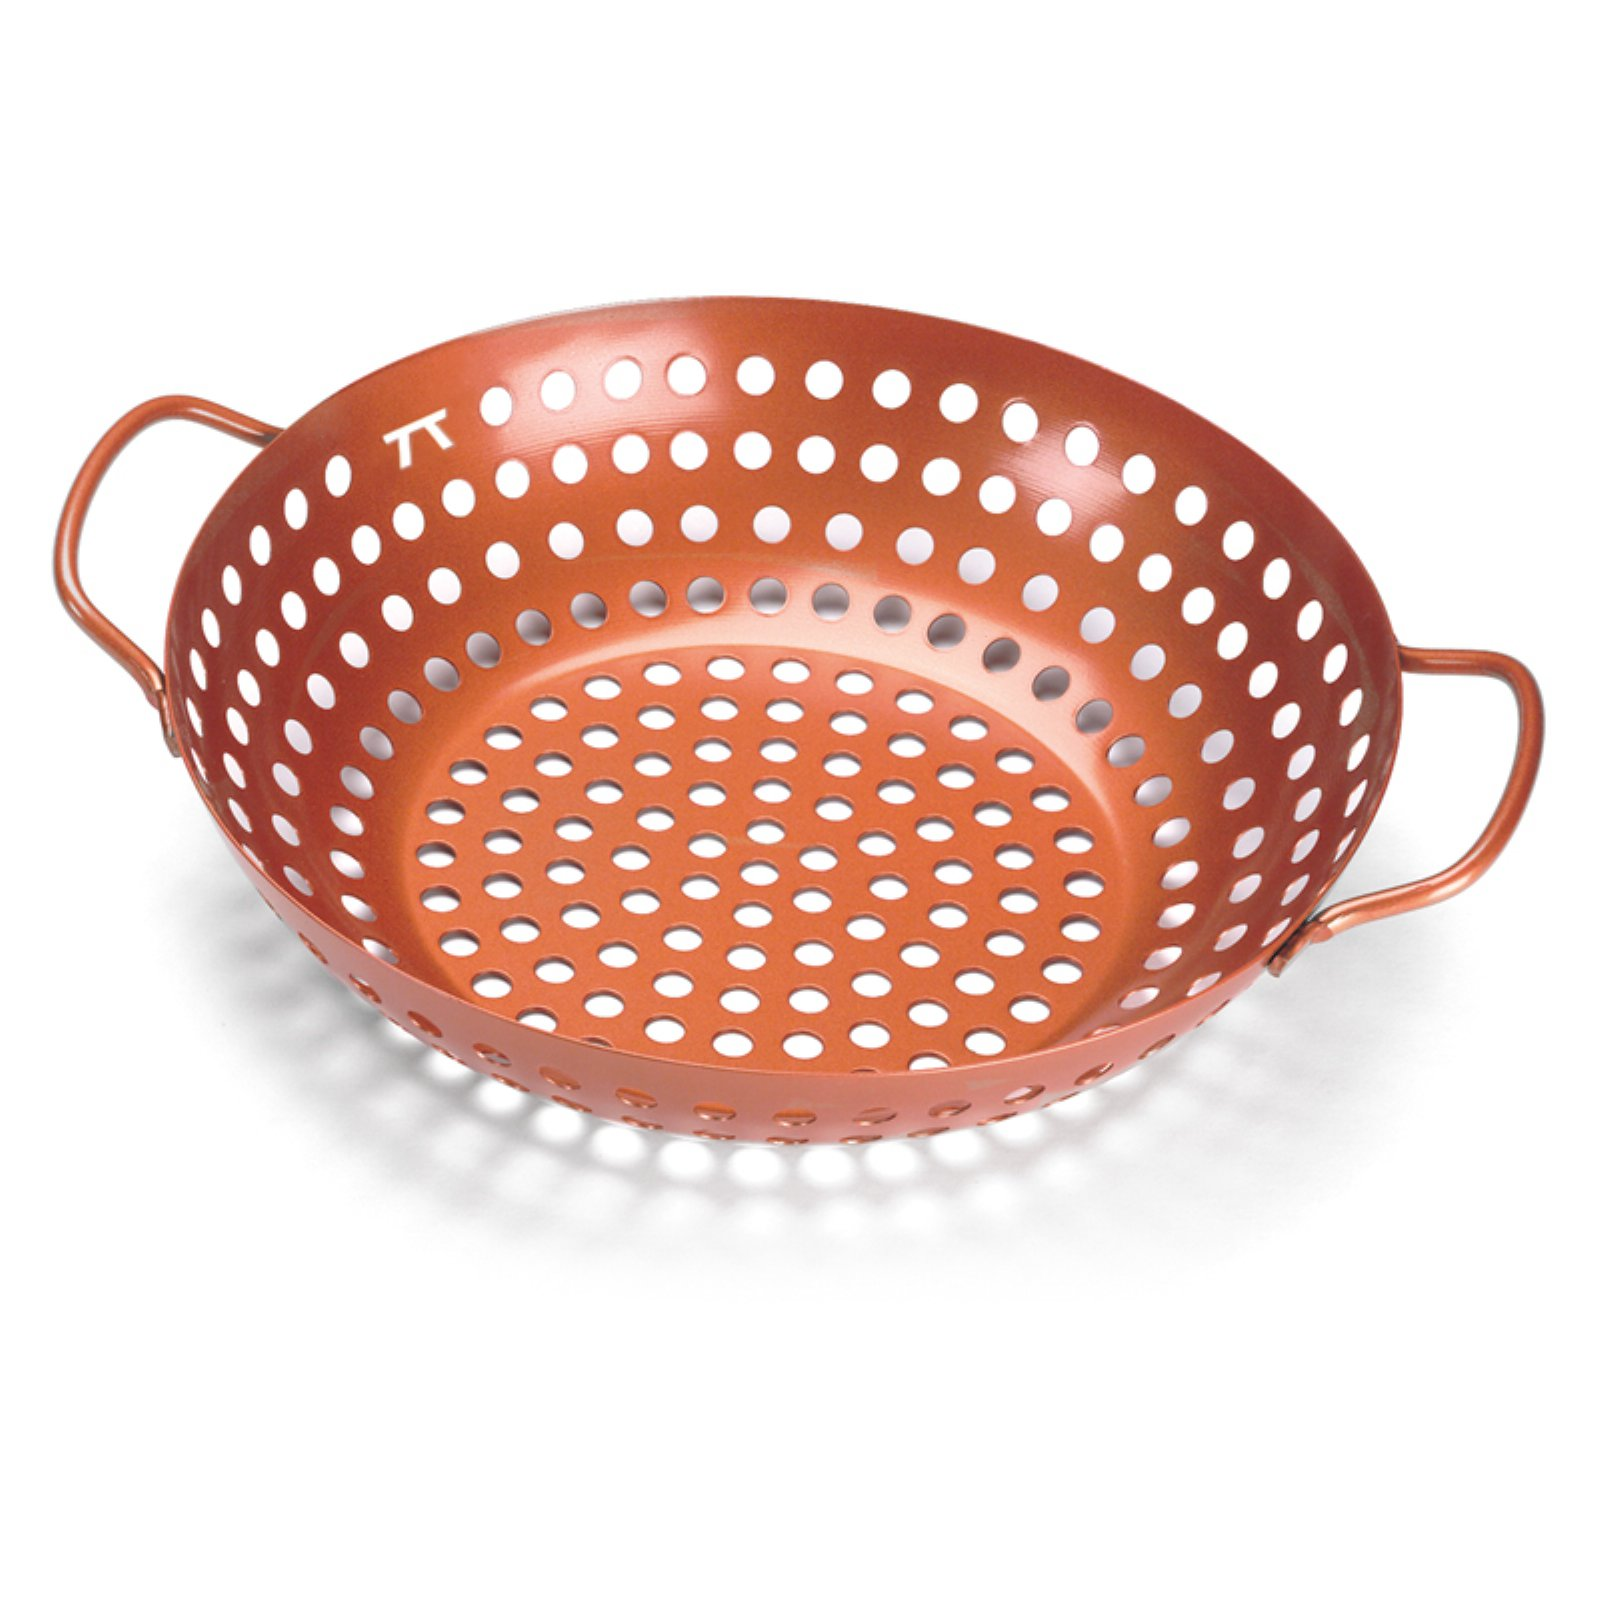 Outset Round Copper Non-Stick Grill Wok